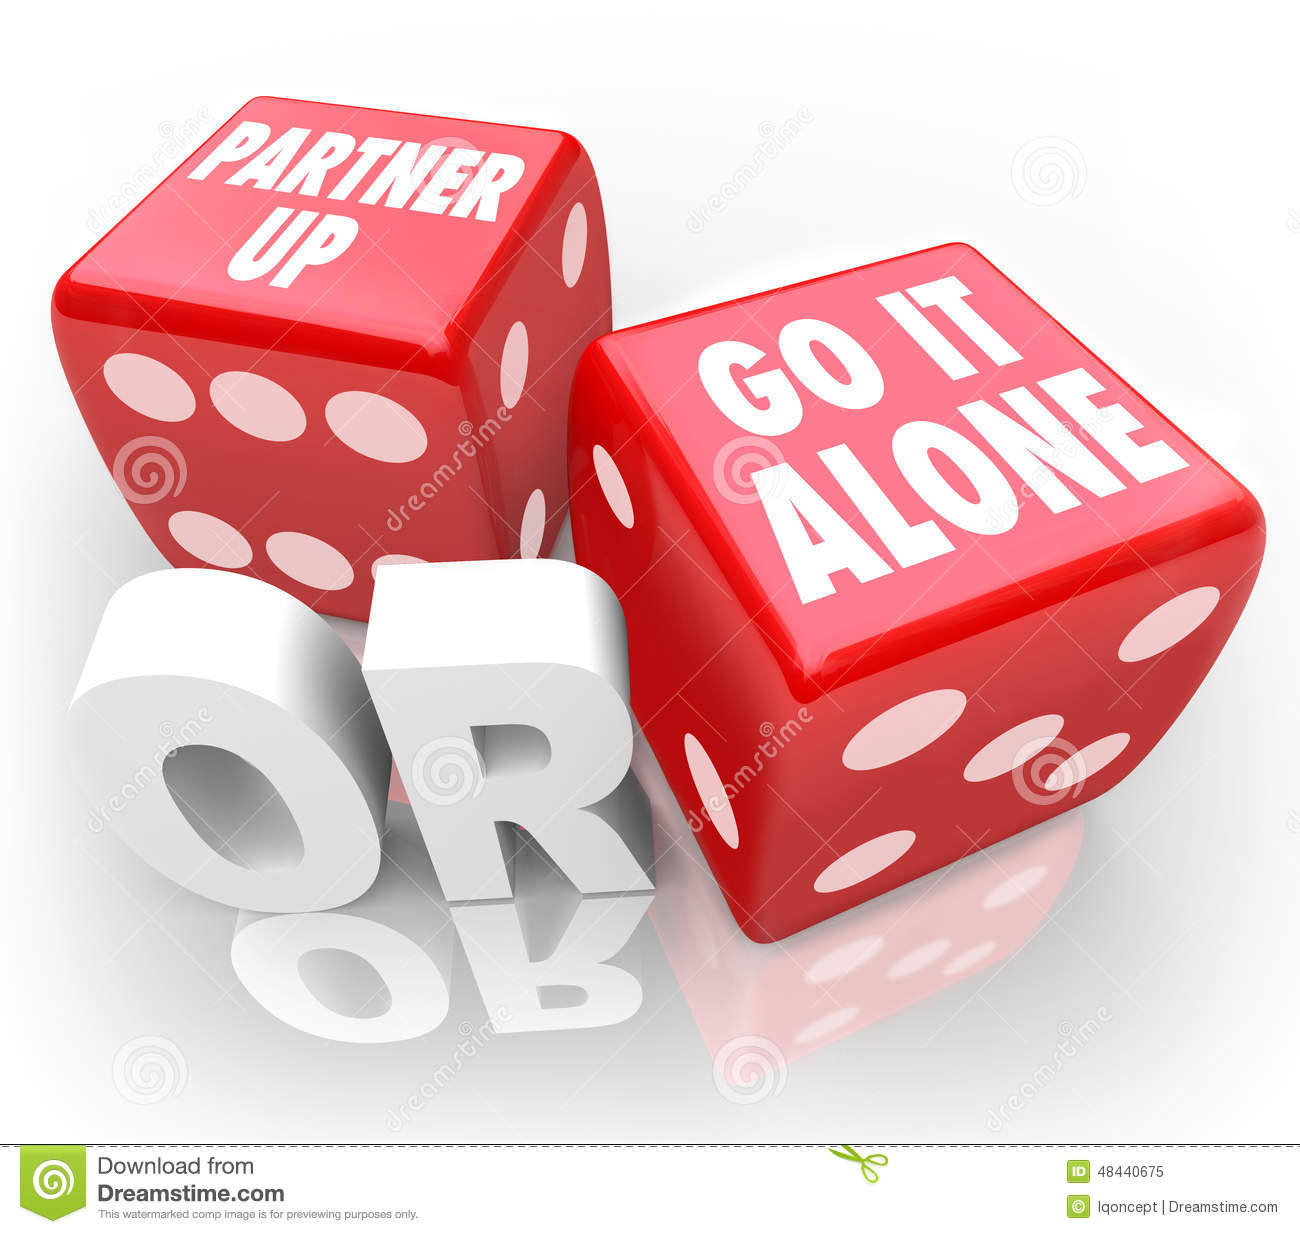 Partner Up Or Go It Alone Two Red Dice Choice Decision Stock.